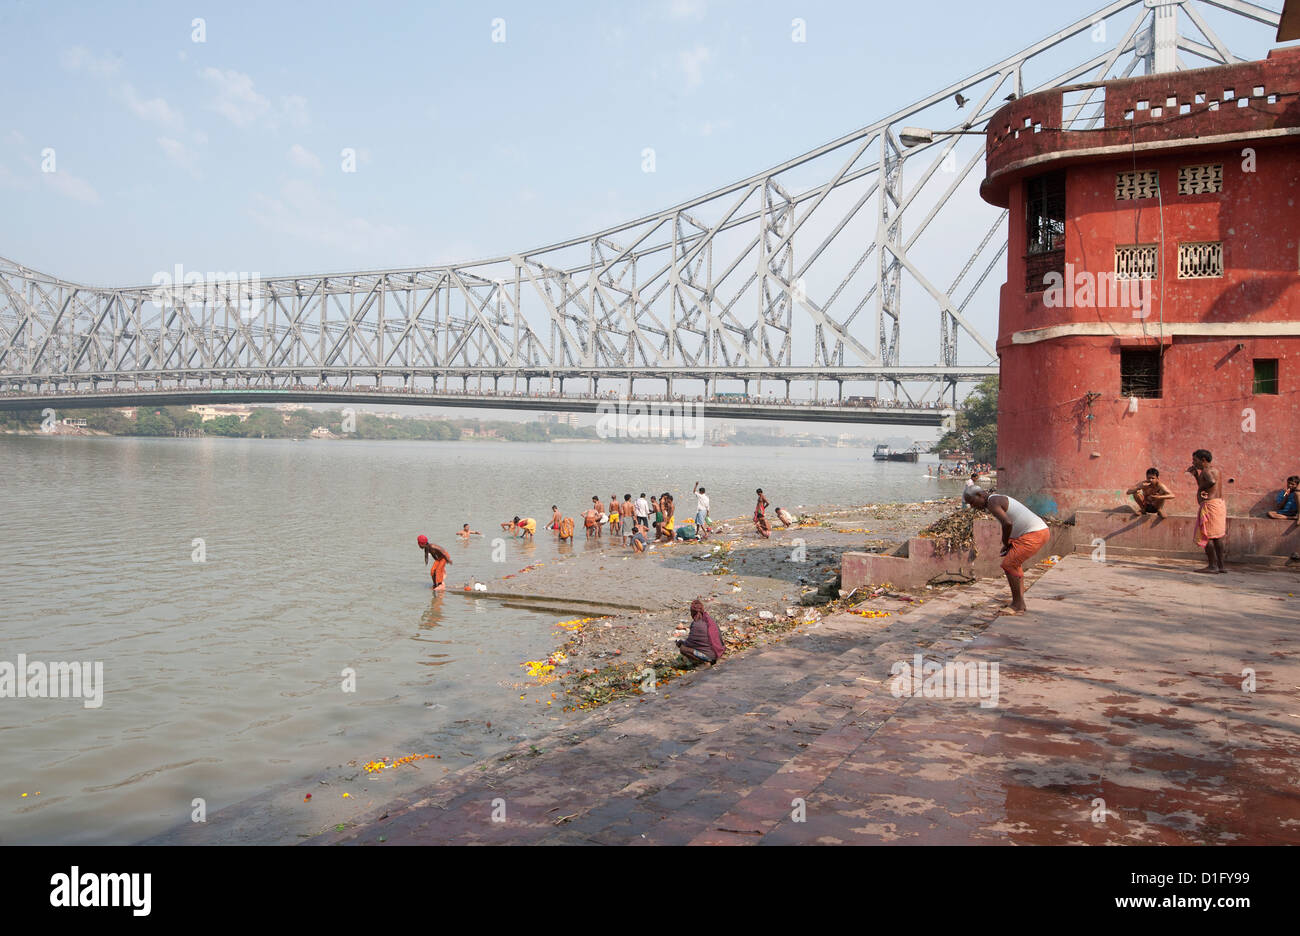 Men performing ablutions on ghats beneath the Howrah Bridge in the early morning, Kolkata (Calcutta), West Bengal, - Stock Image